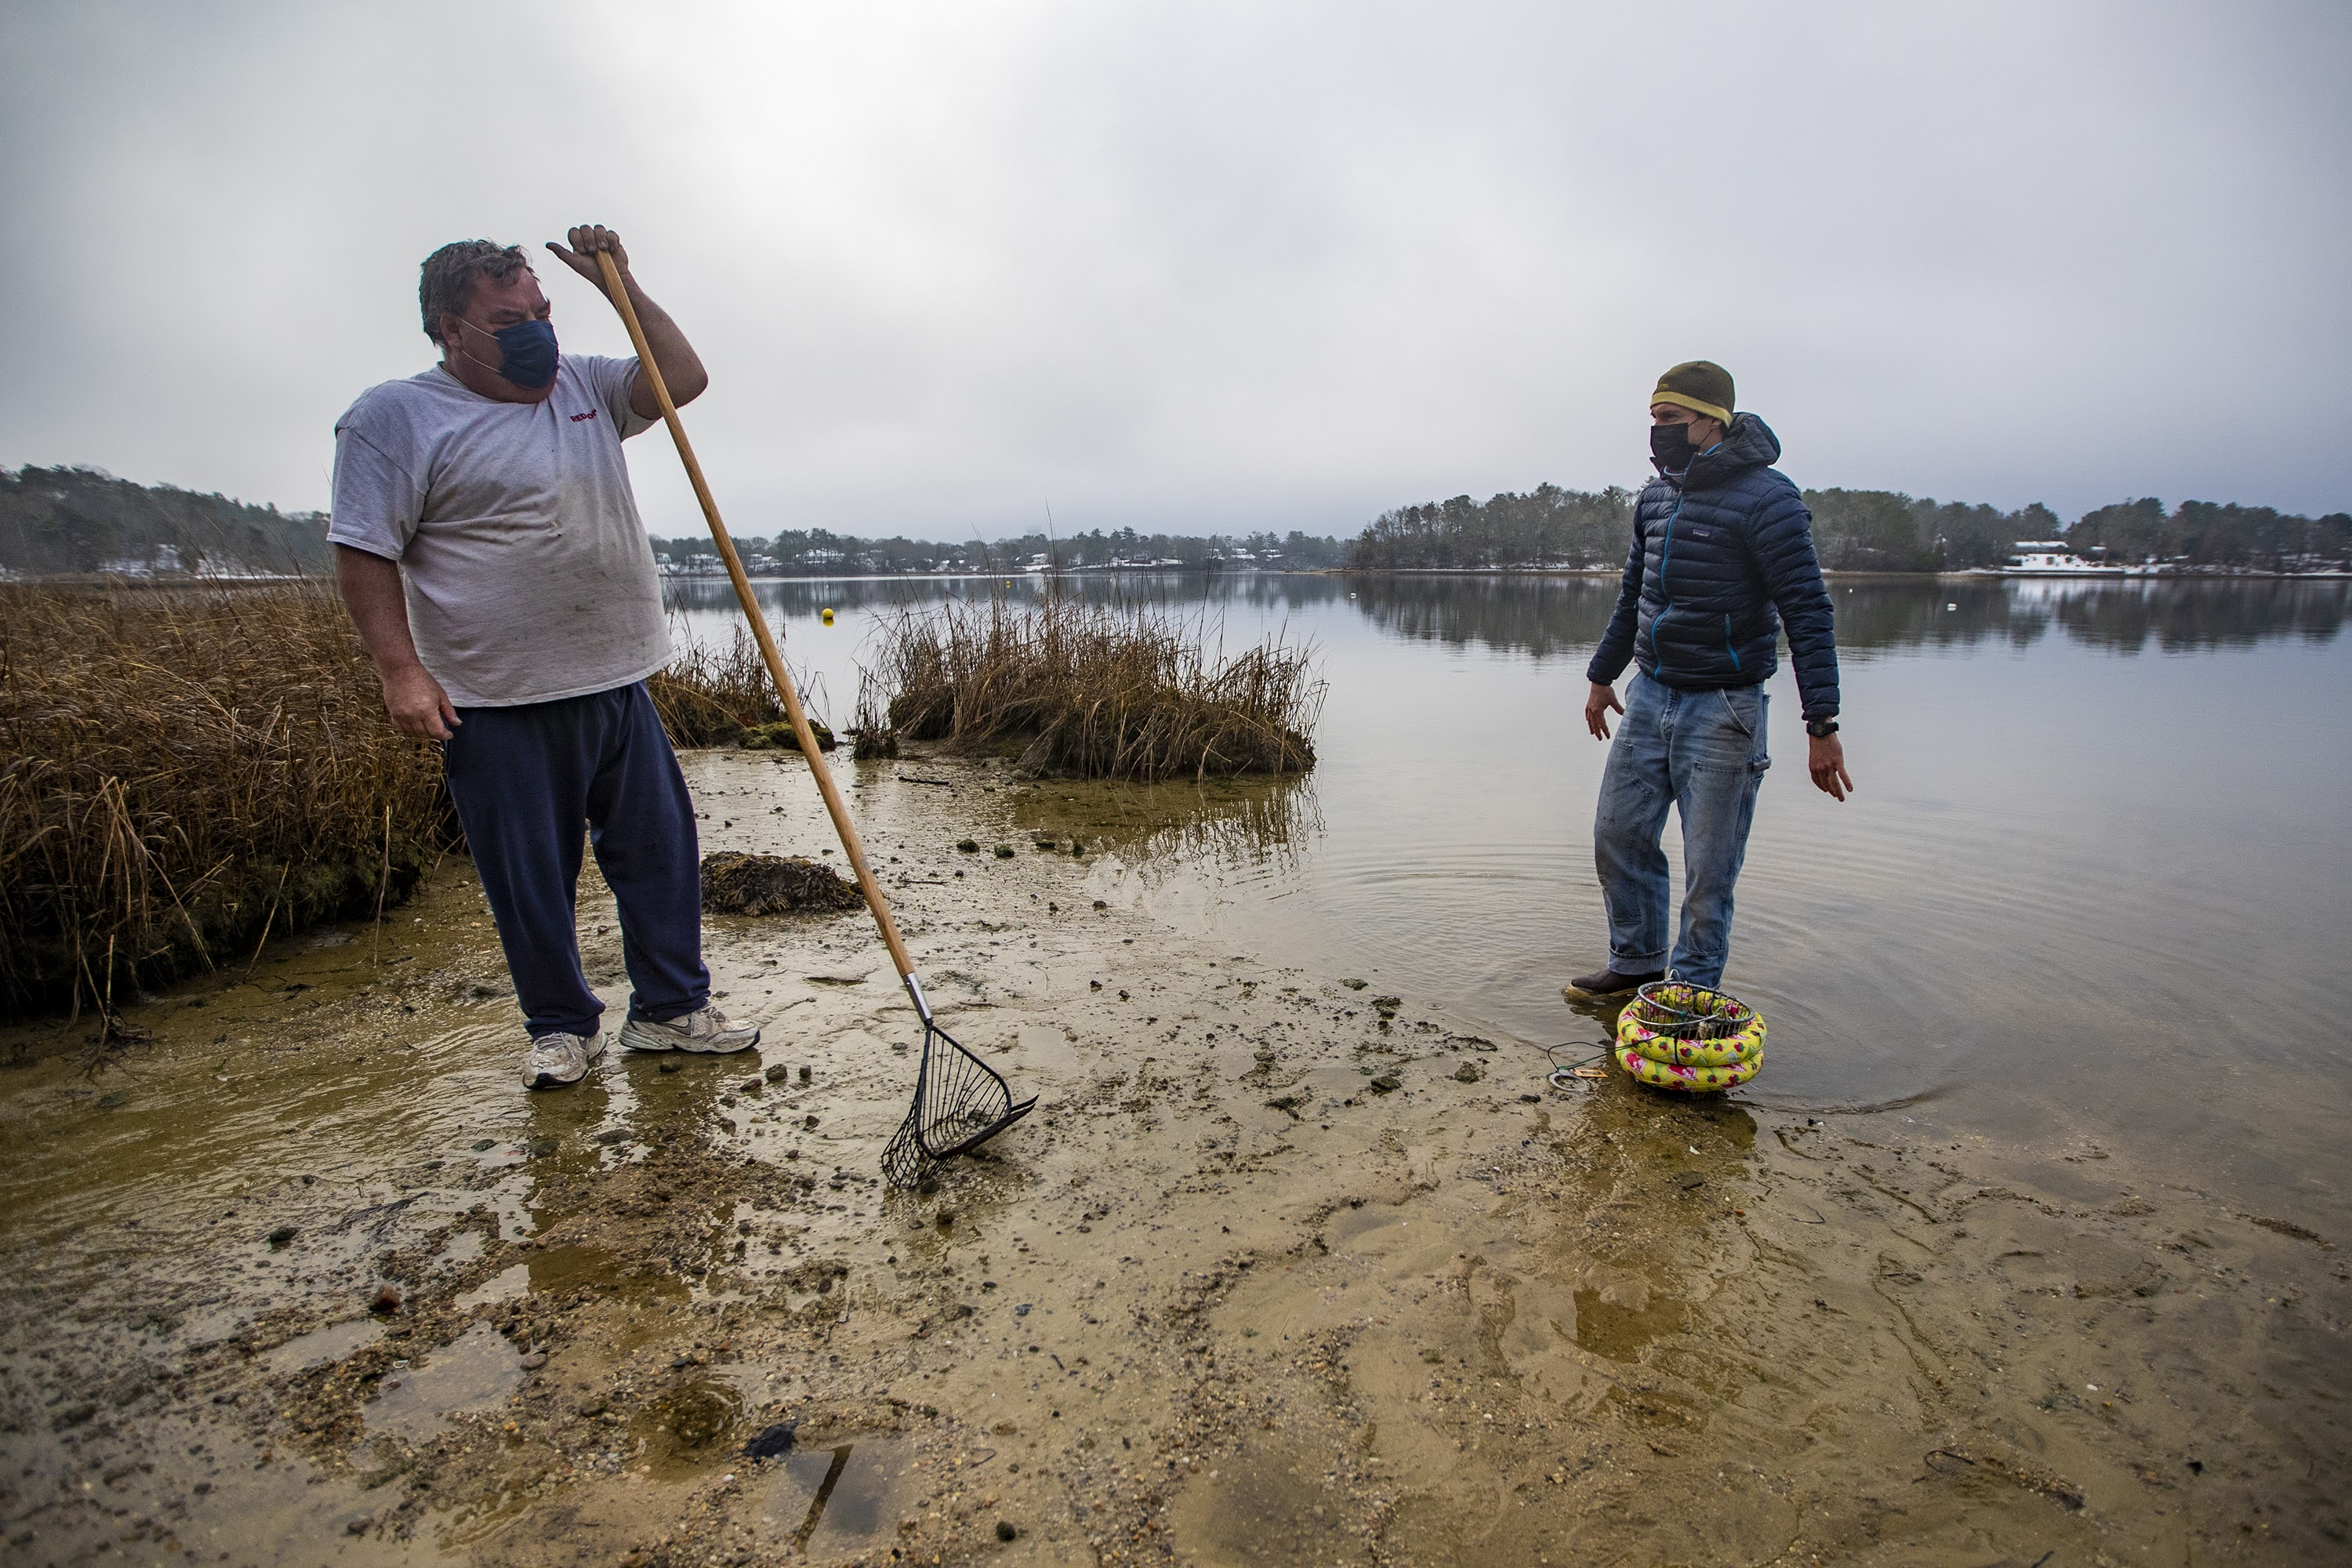 Oyster farmer Bruce Silverbrand, left, and coastal program manager for the Nature Conservancy, Steven Kirk, at Little Buttermilk Bay in Buzzards Bay. (Jesse Costa/WBUR)